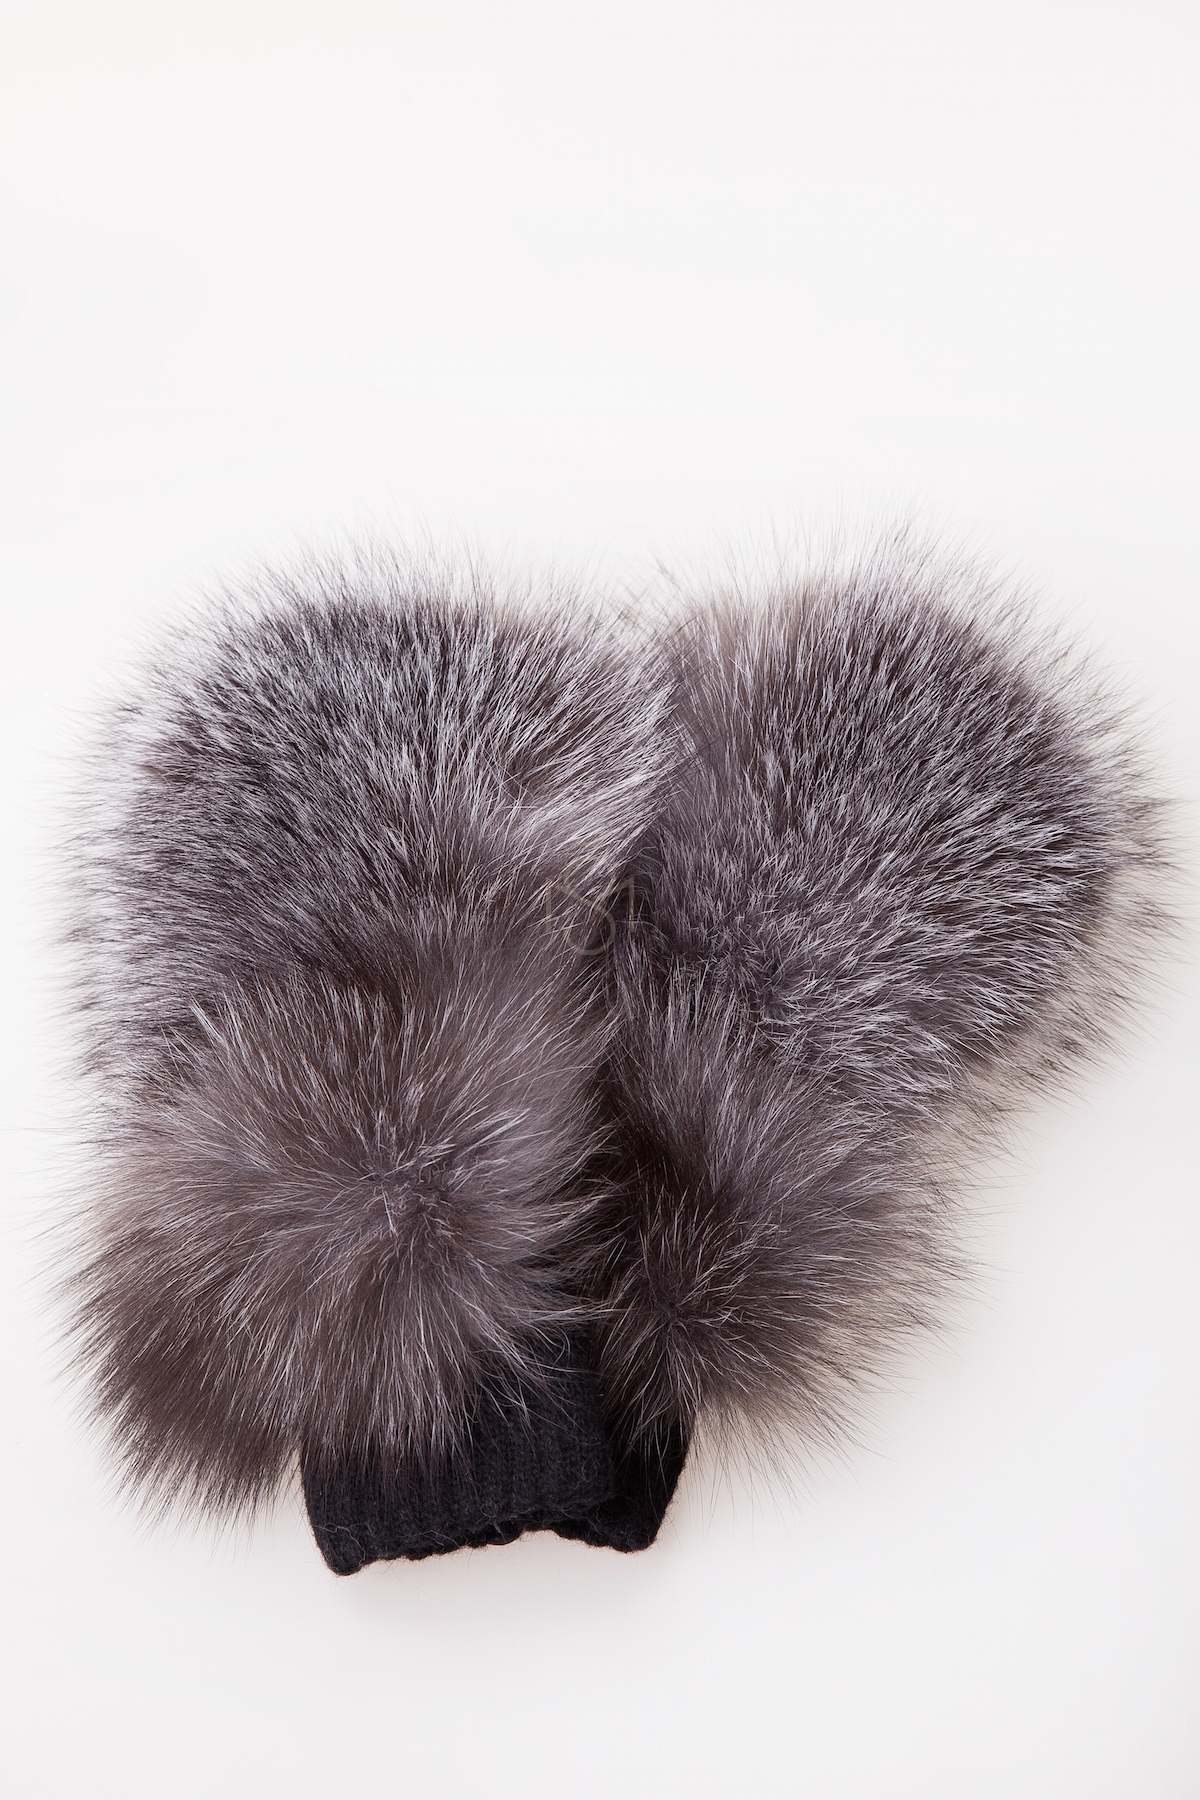 Mittens with silver fox fur made by Silta mada fur studio in Vilnius